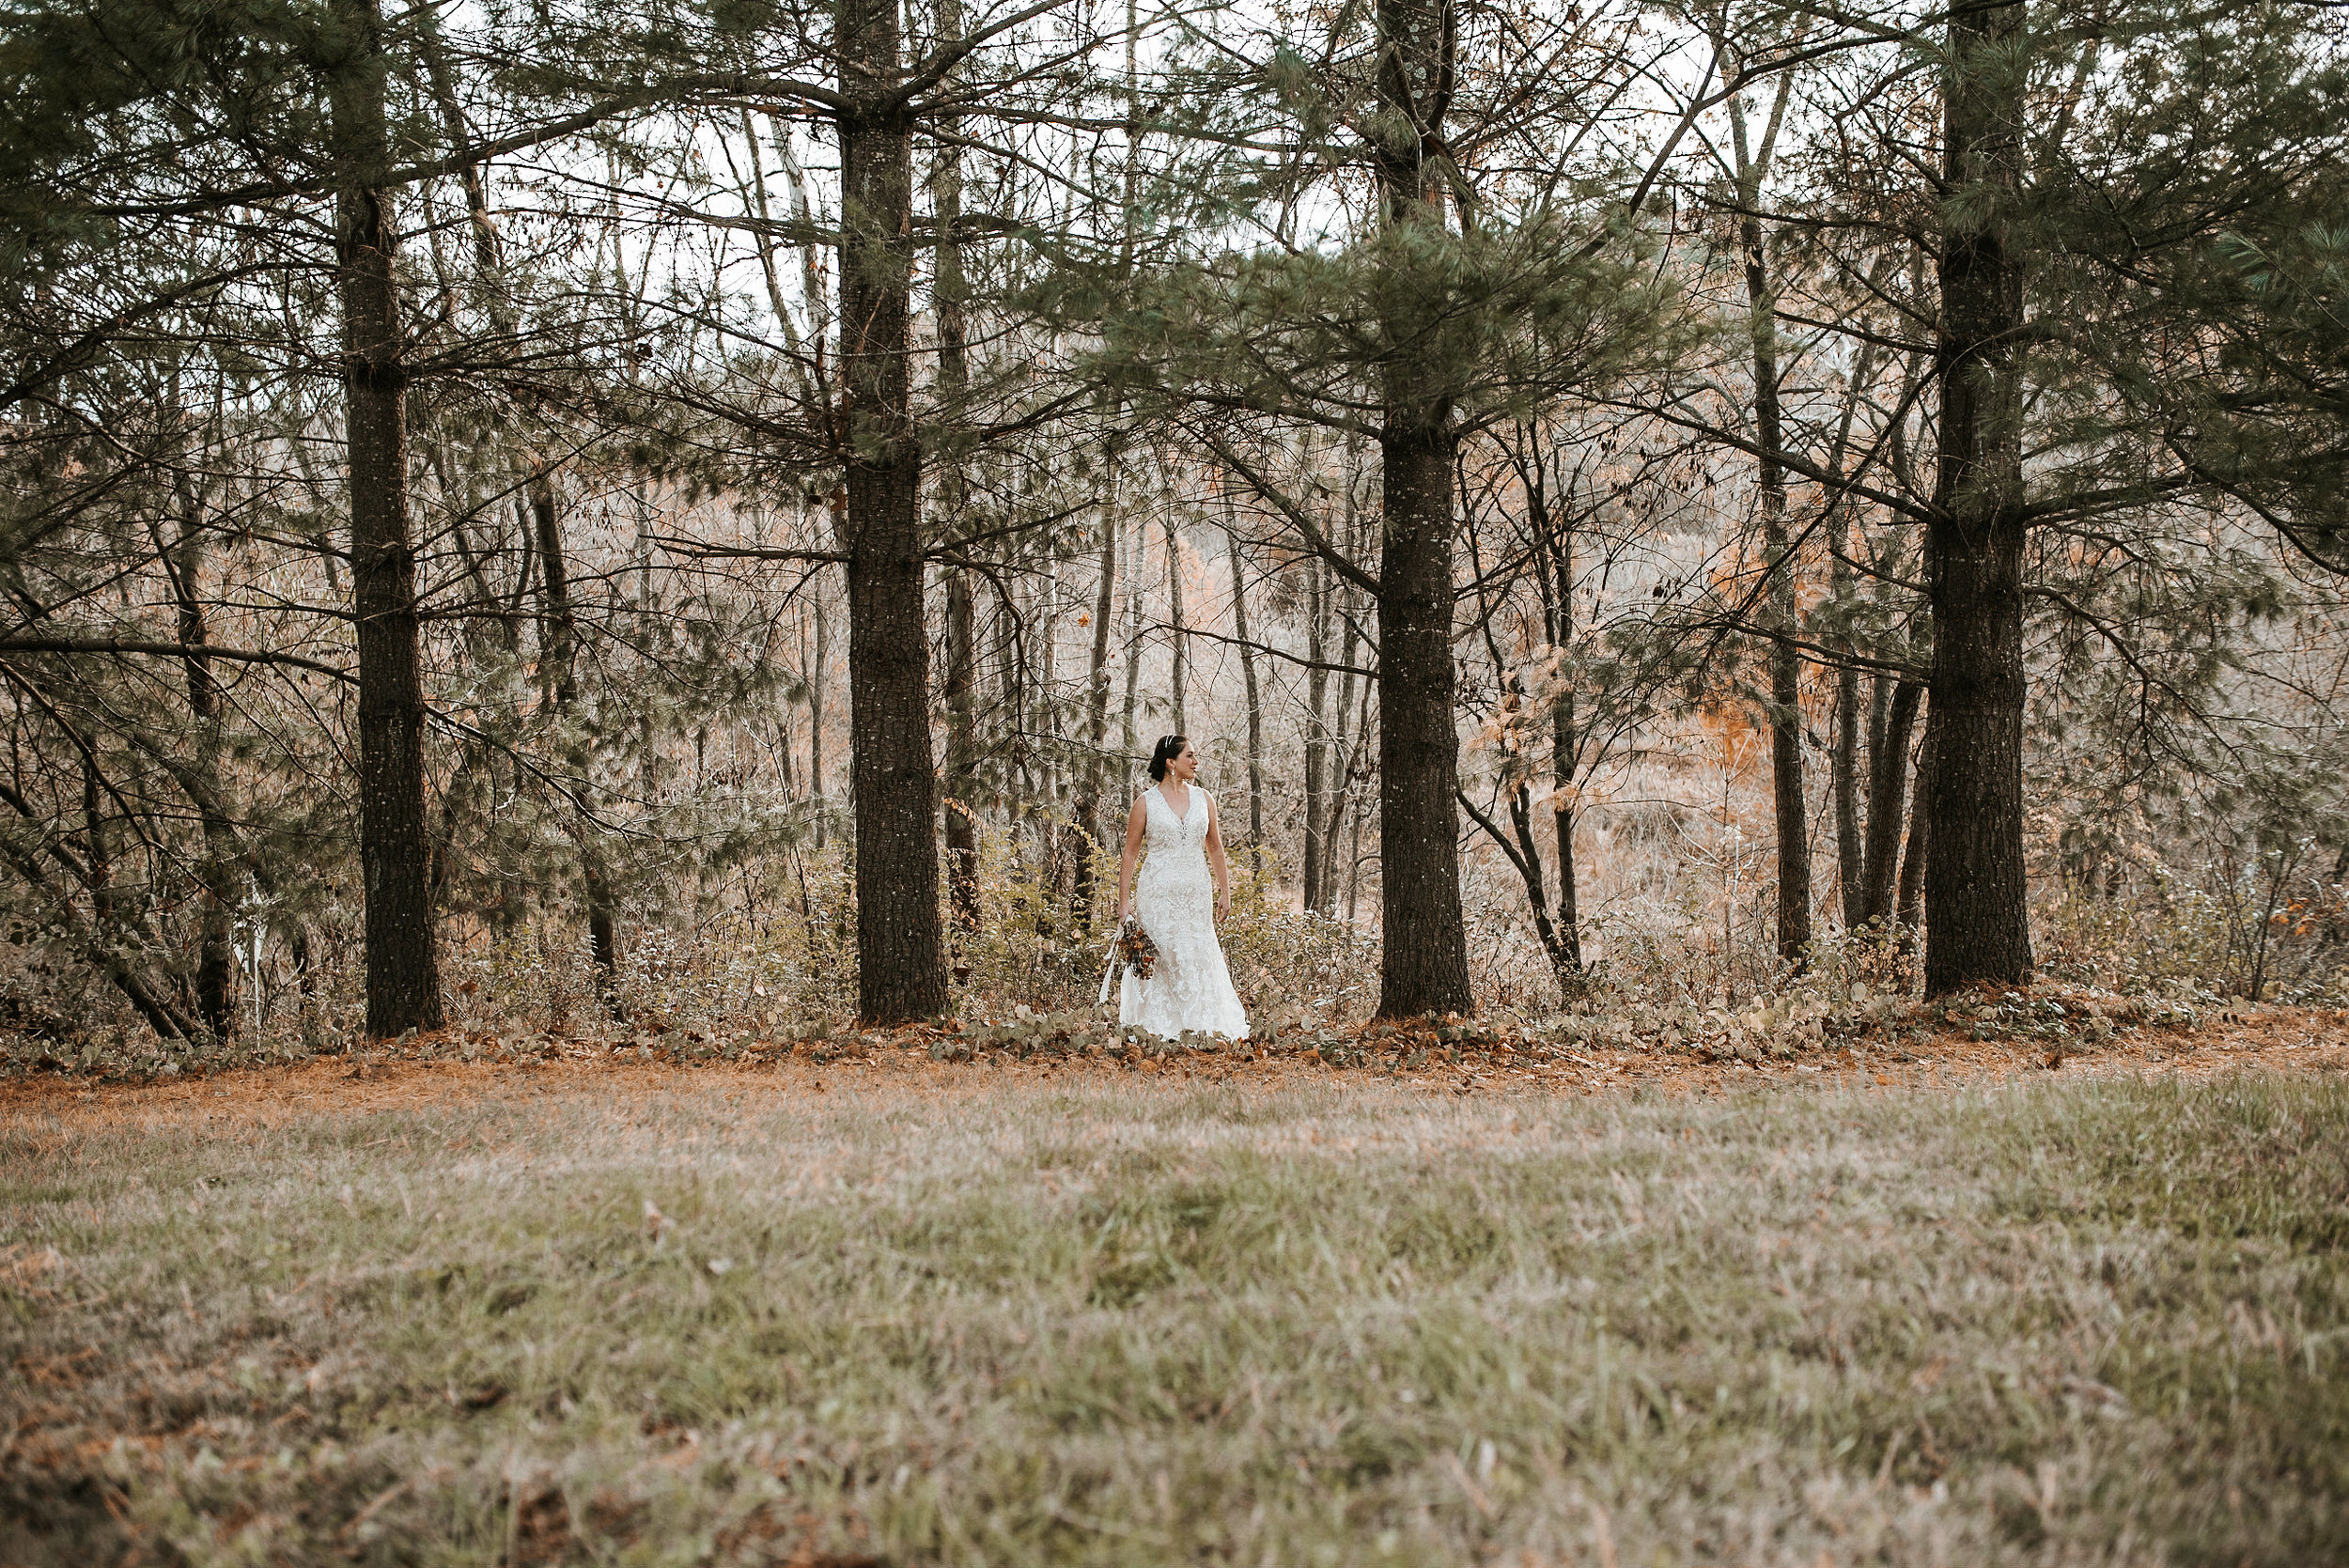 Bride standing alone among pine trees